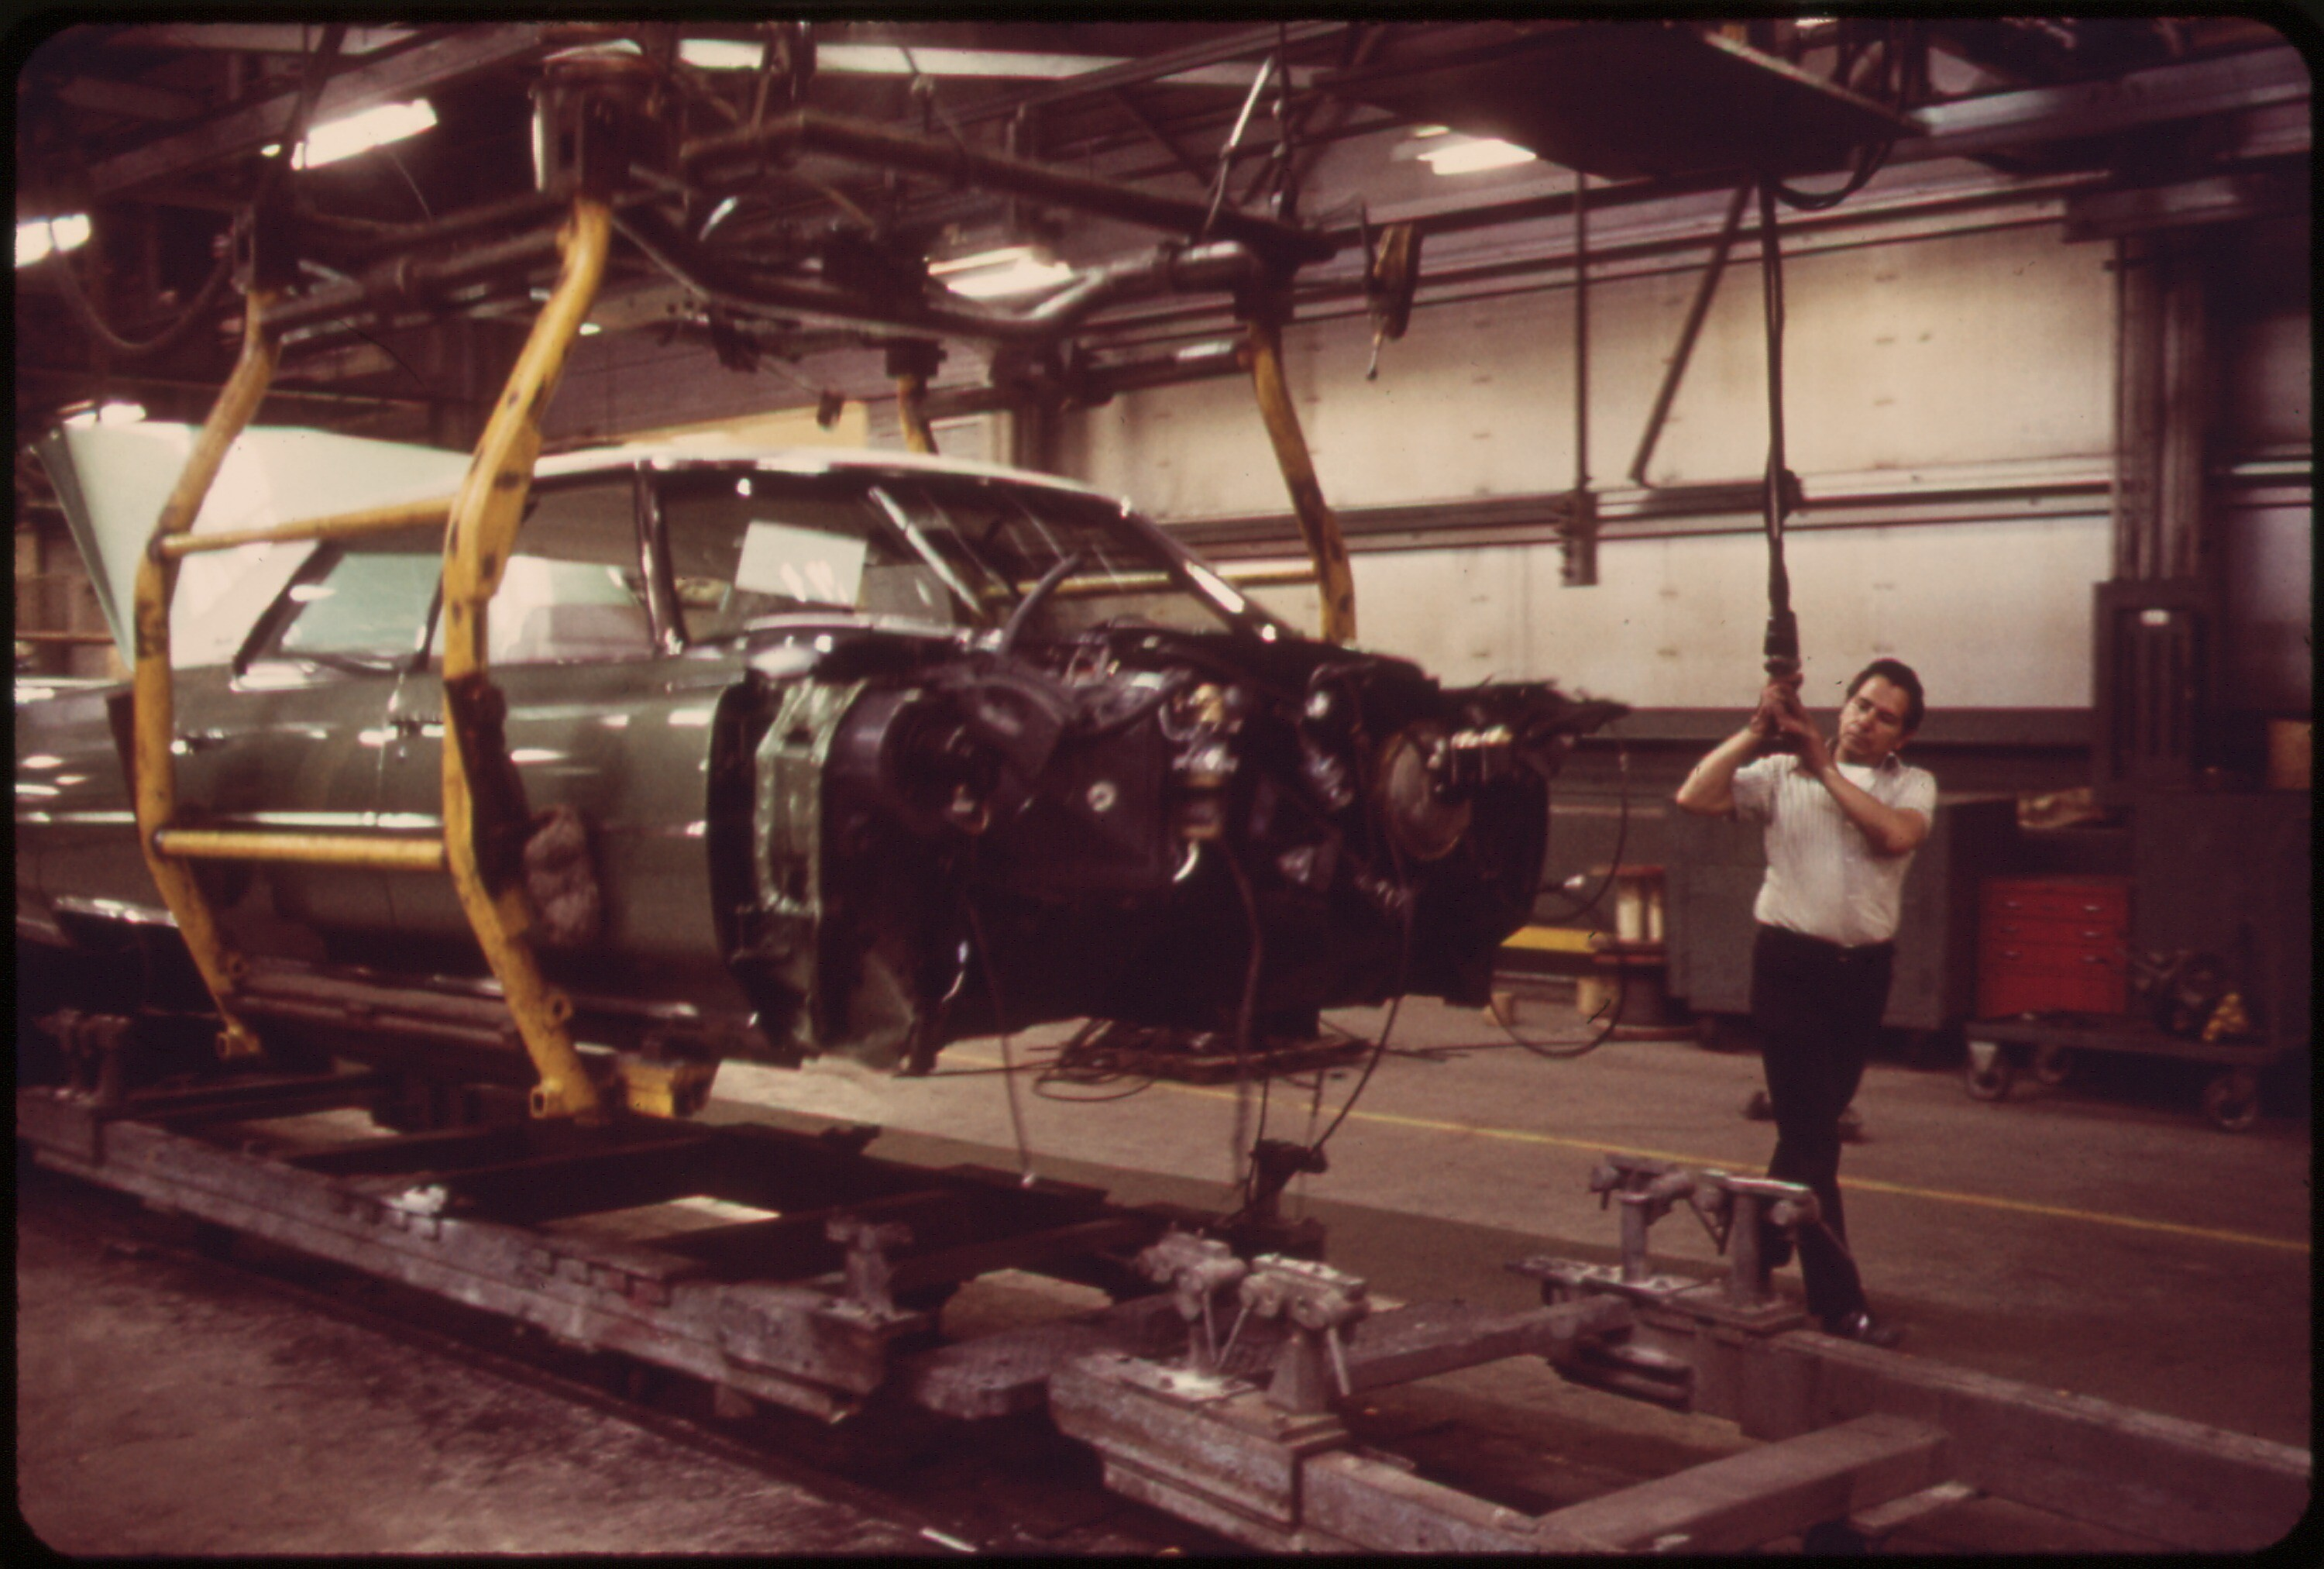 ON_THE_CADILLAC_ASSEMBLY_LINE-WIRING_IS_COMPLETE_ON_THIS_BODY,_AND_NOW_THE_WORKER_WILL__DROP__IT_THR